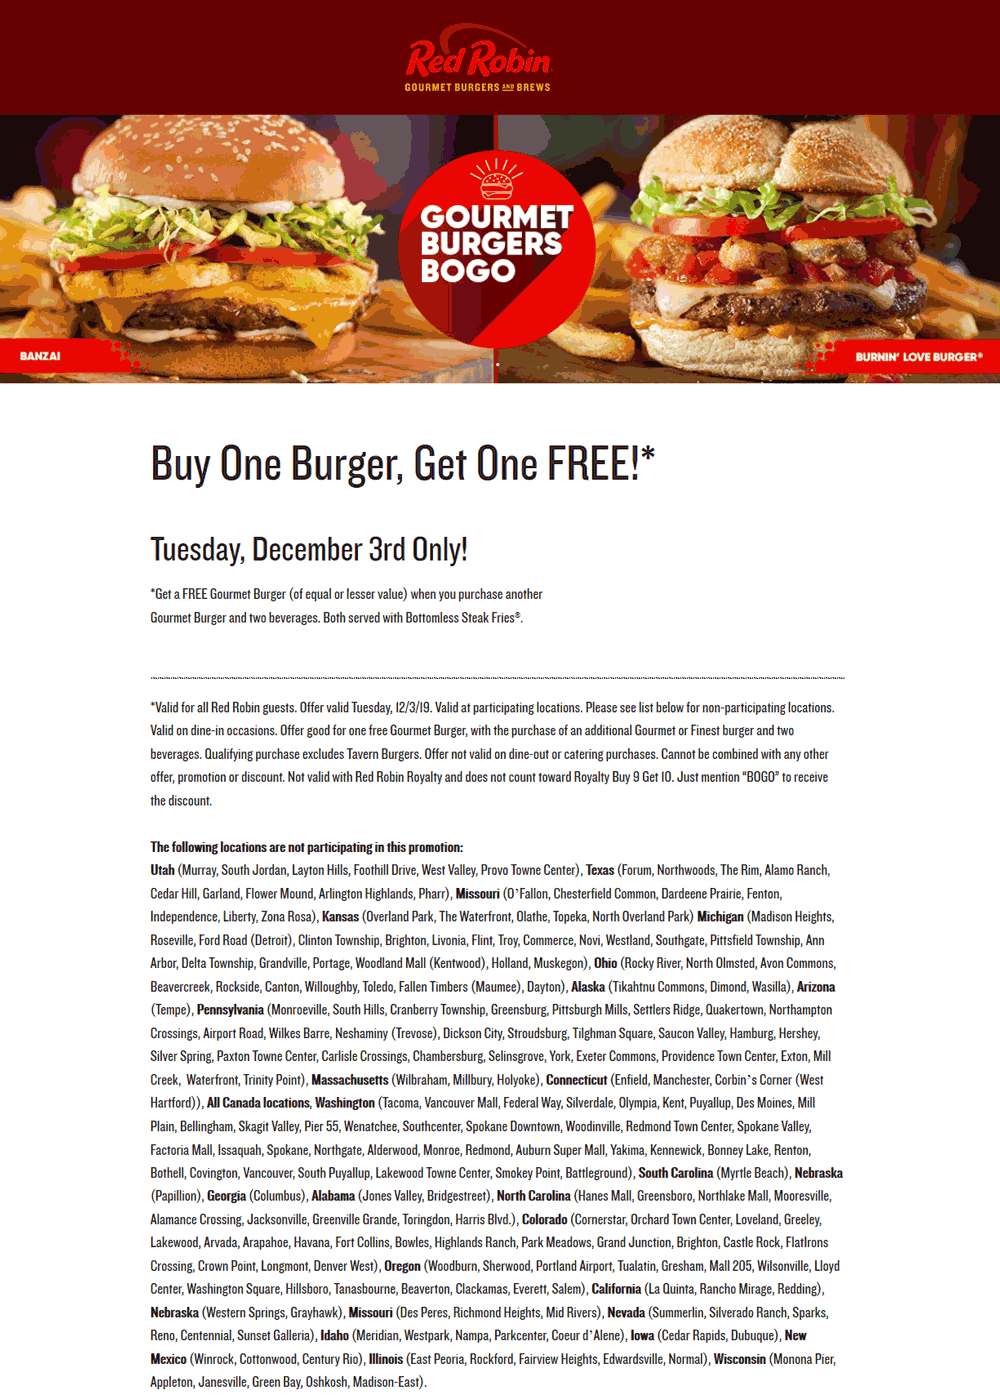 Red Robin Coupon December 2019 Second burger free today at Red Robin restaurants